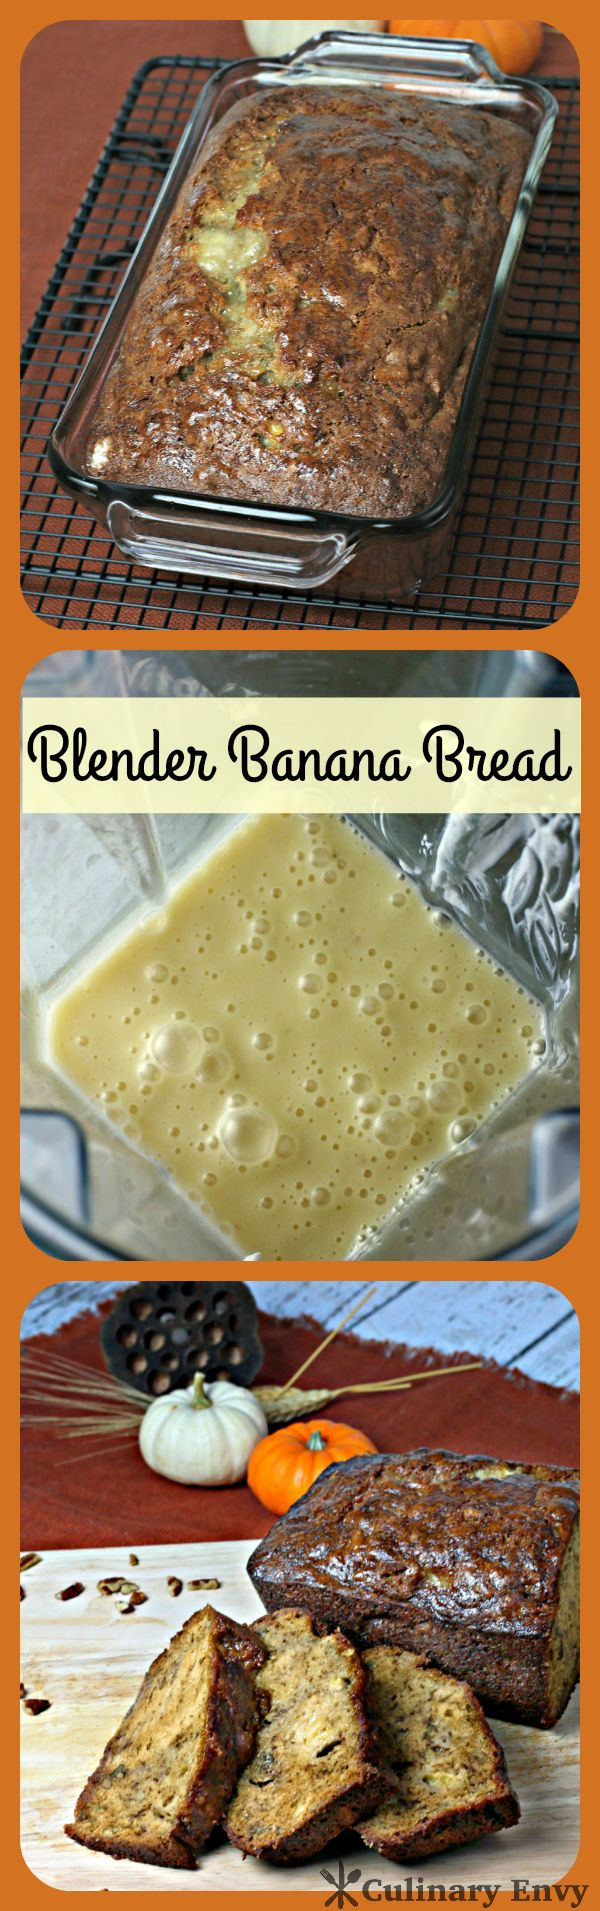 Not just another banana bread recipe. Rich, soft, extra moist with tons of banana flavor that make this Blender Banana Bread the most decadent ever.